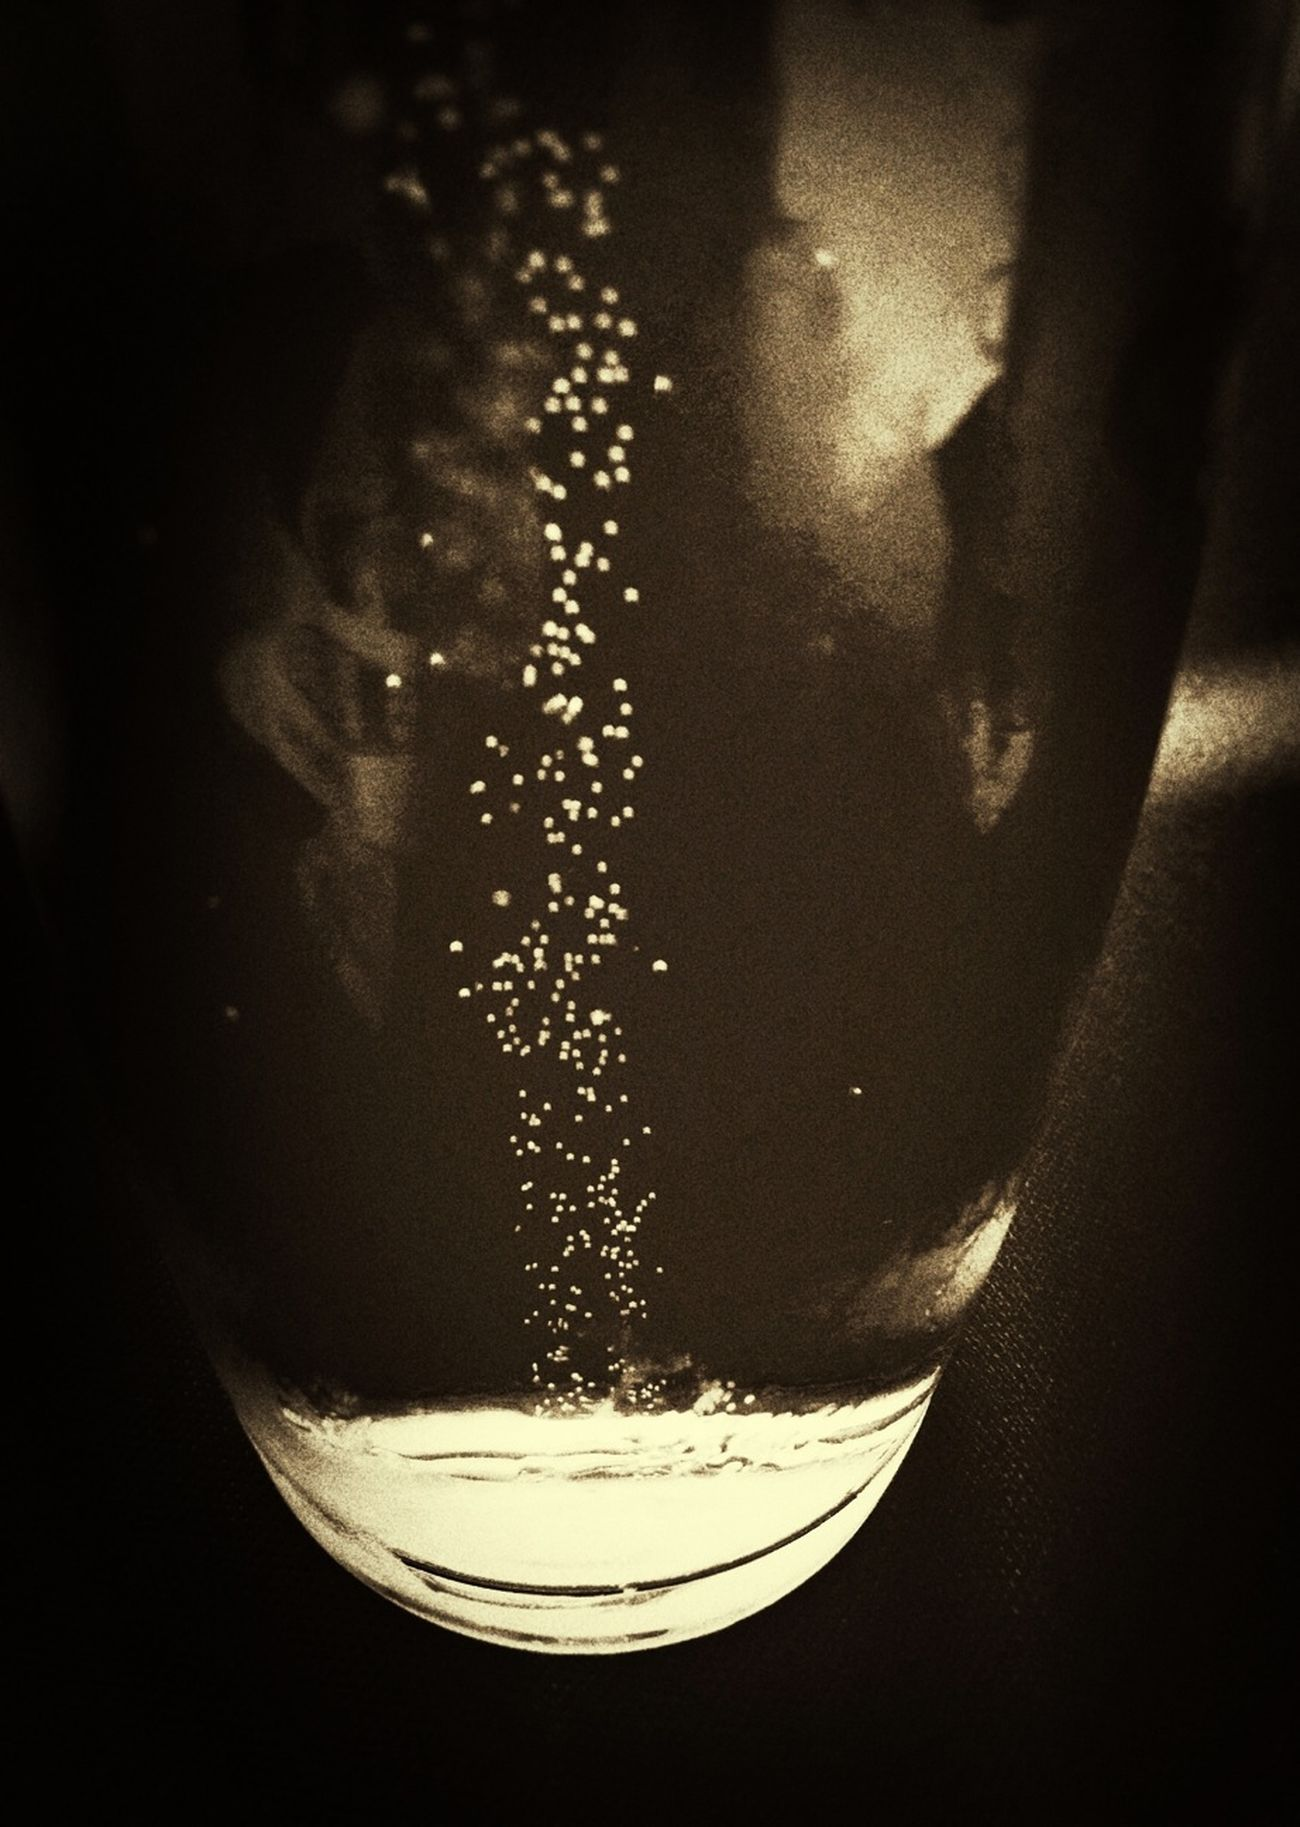 Reflections Rising Sparks Darkart I ❤ Beer